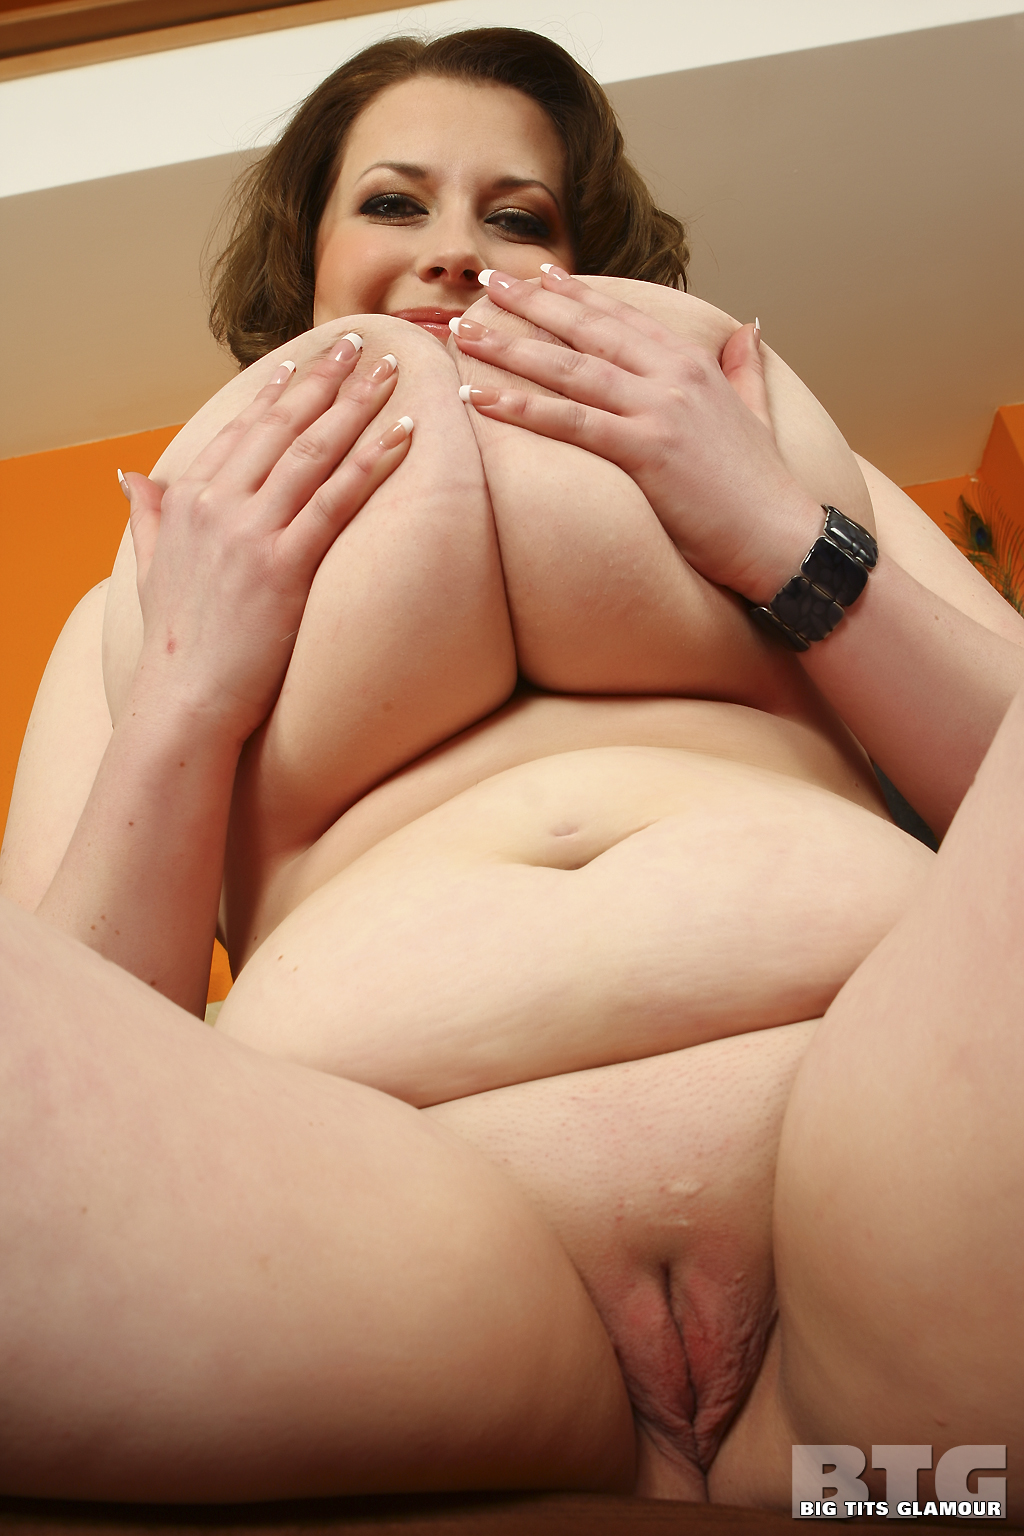 Porn galleries of big young perky tits pussy